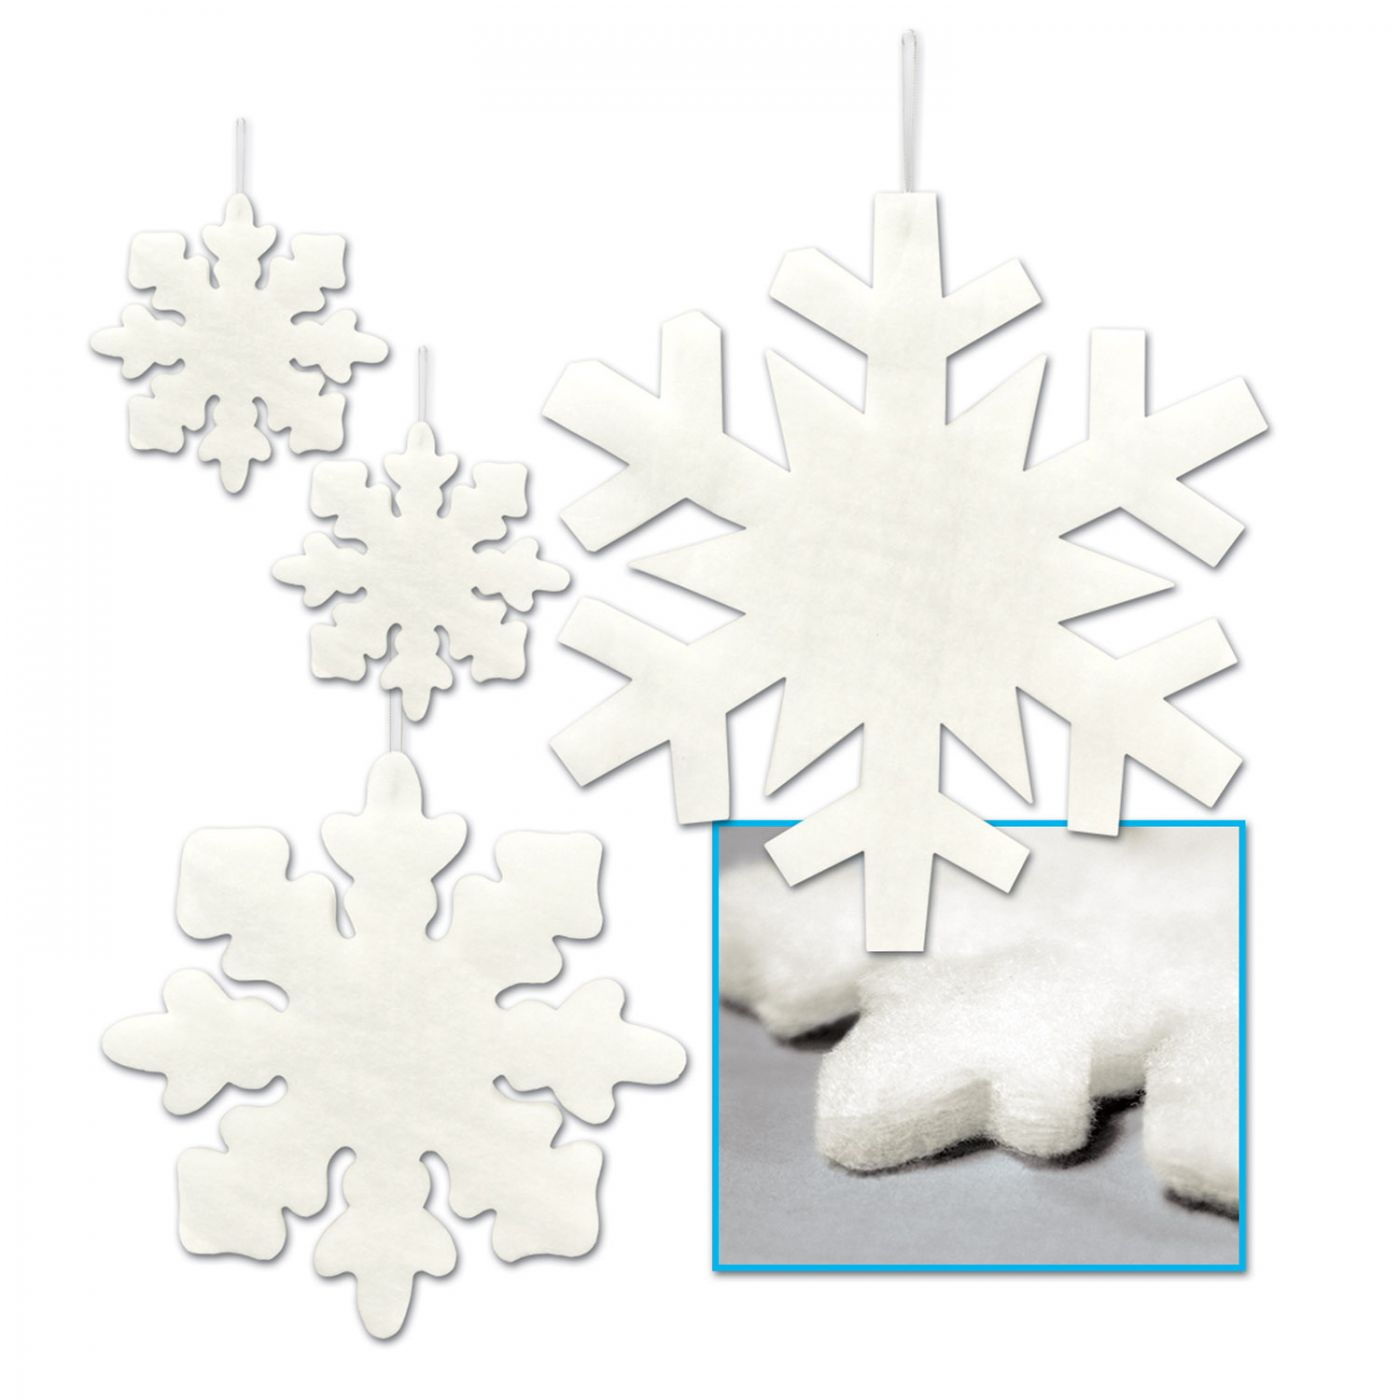 Fluffy Snowflakes image